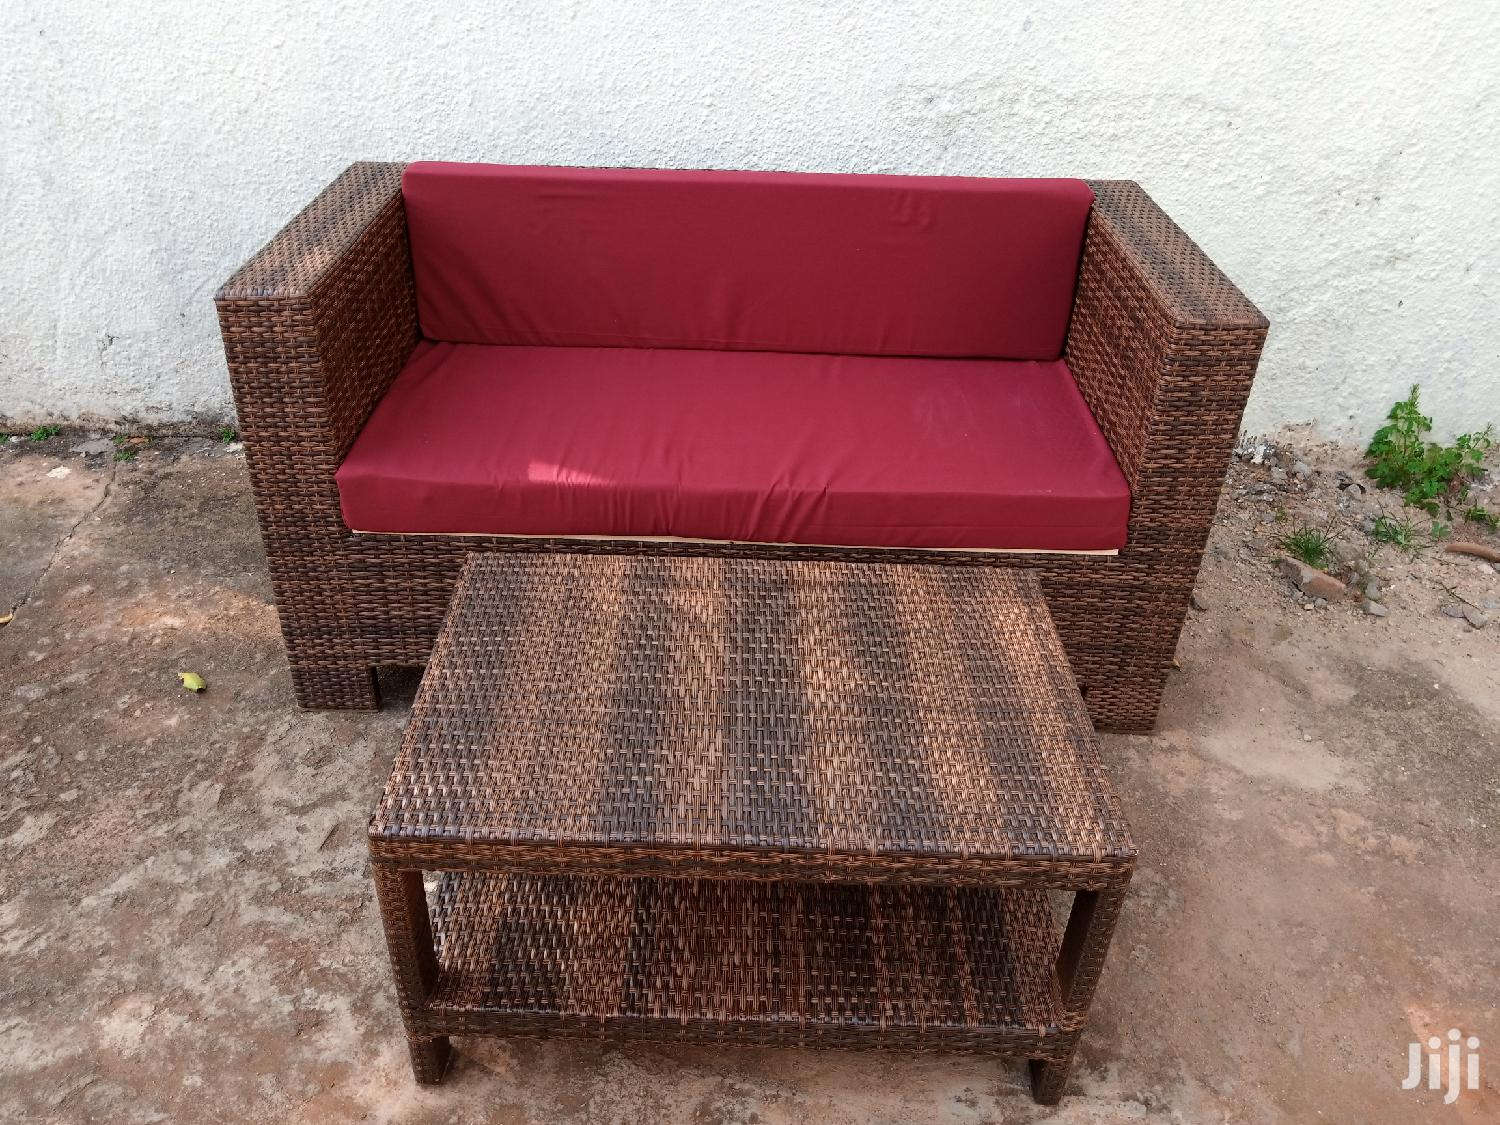 Two Seater With Cushion and Atable in Plastic Lato Strips